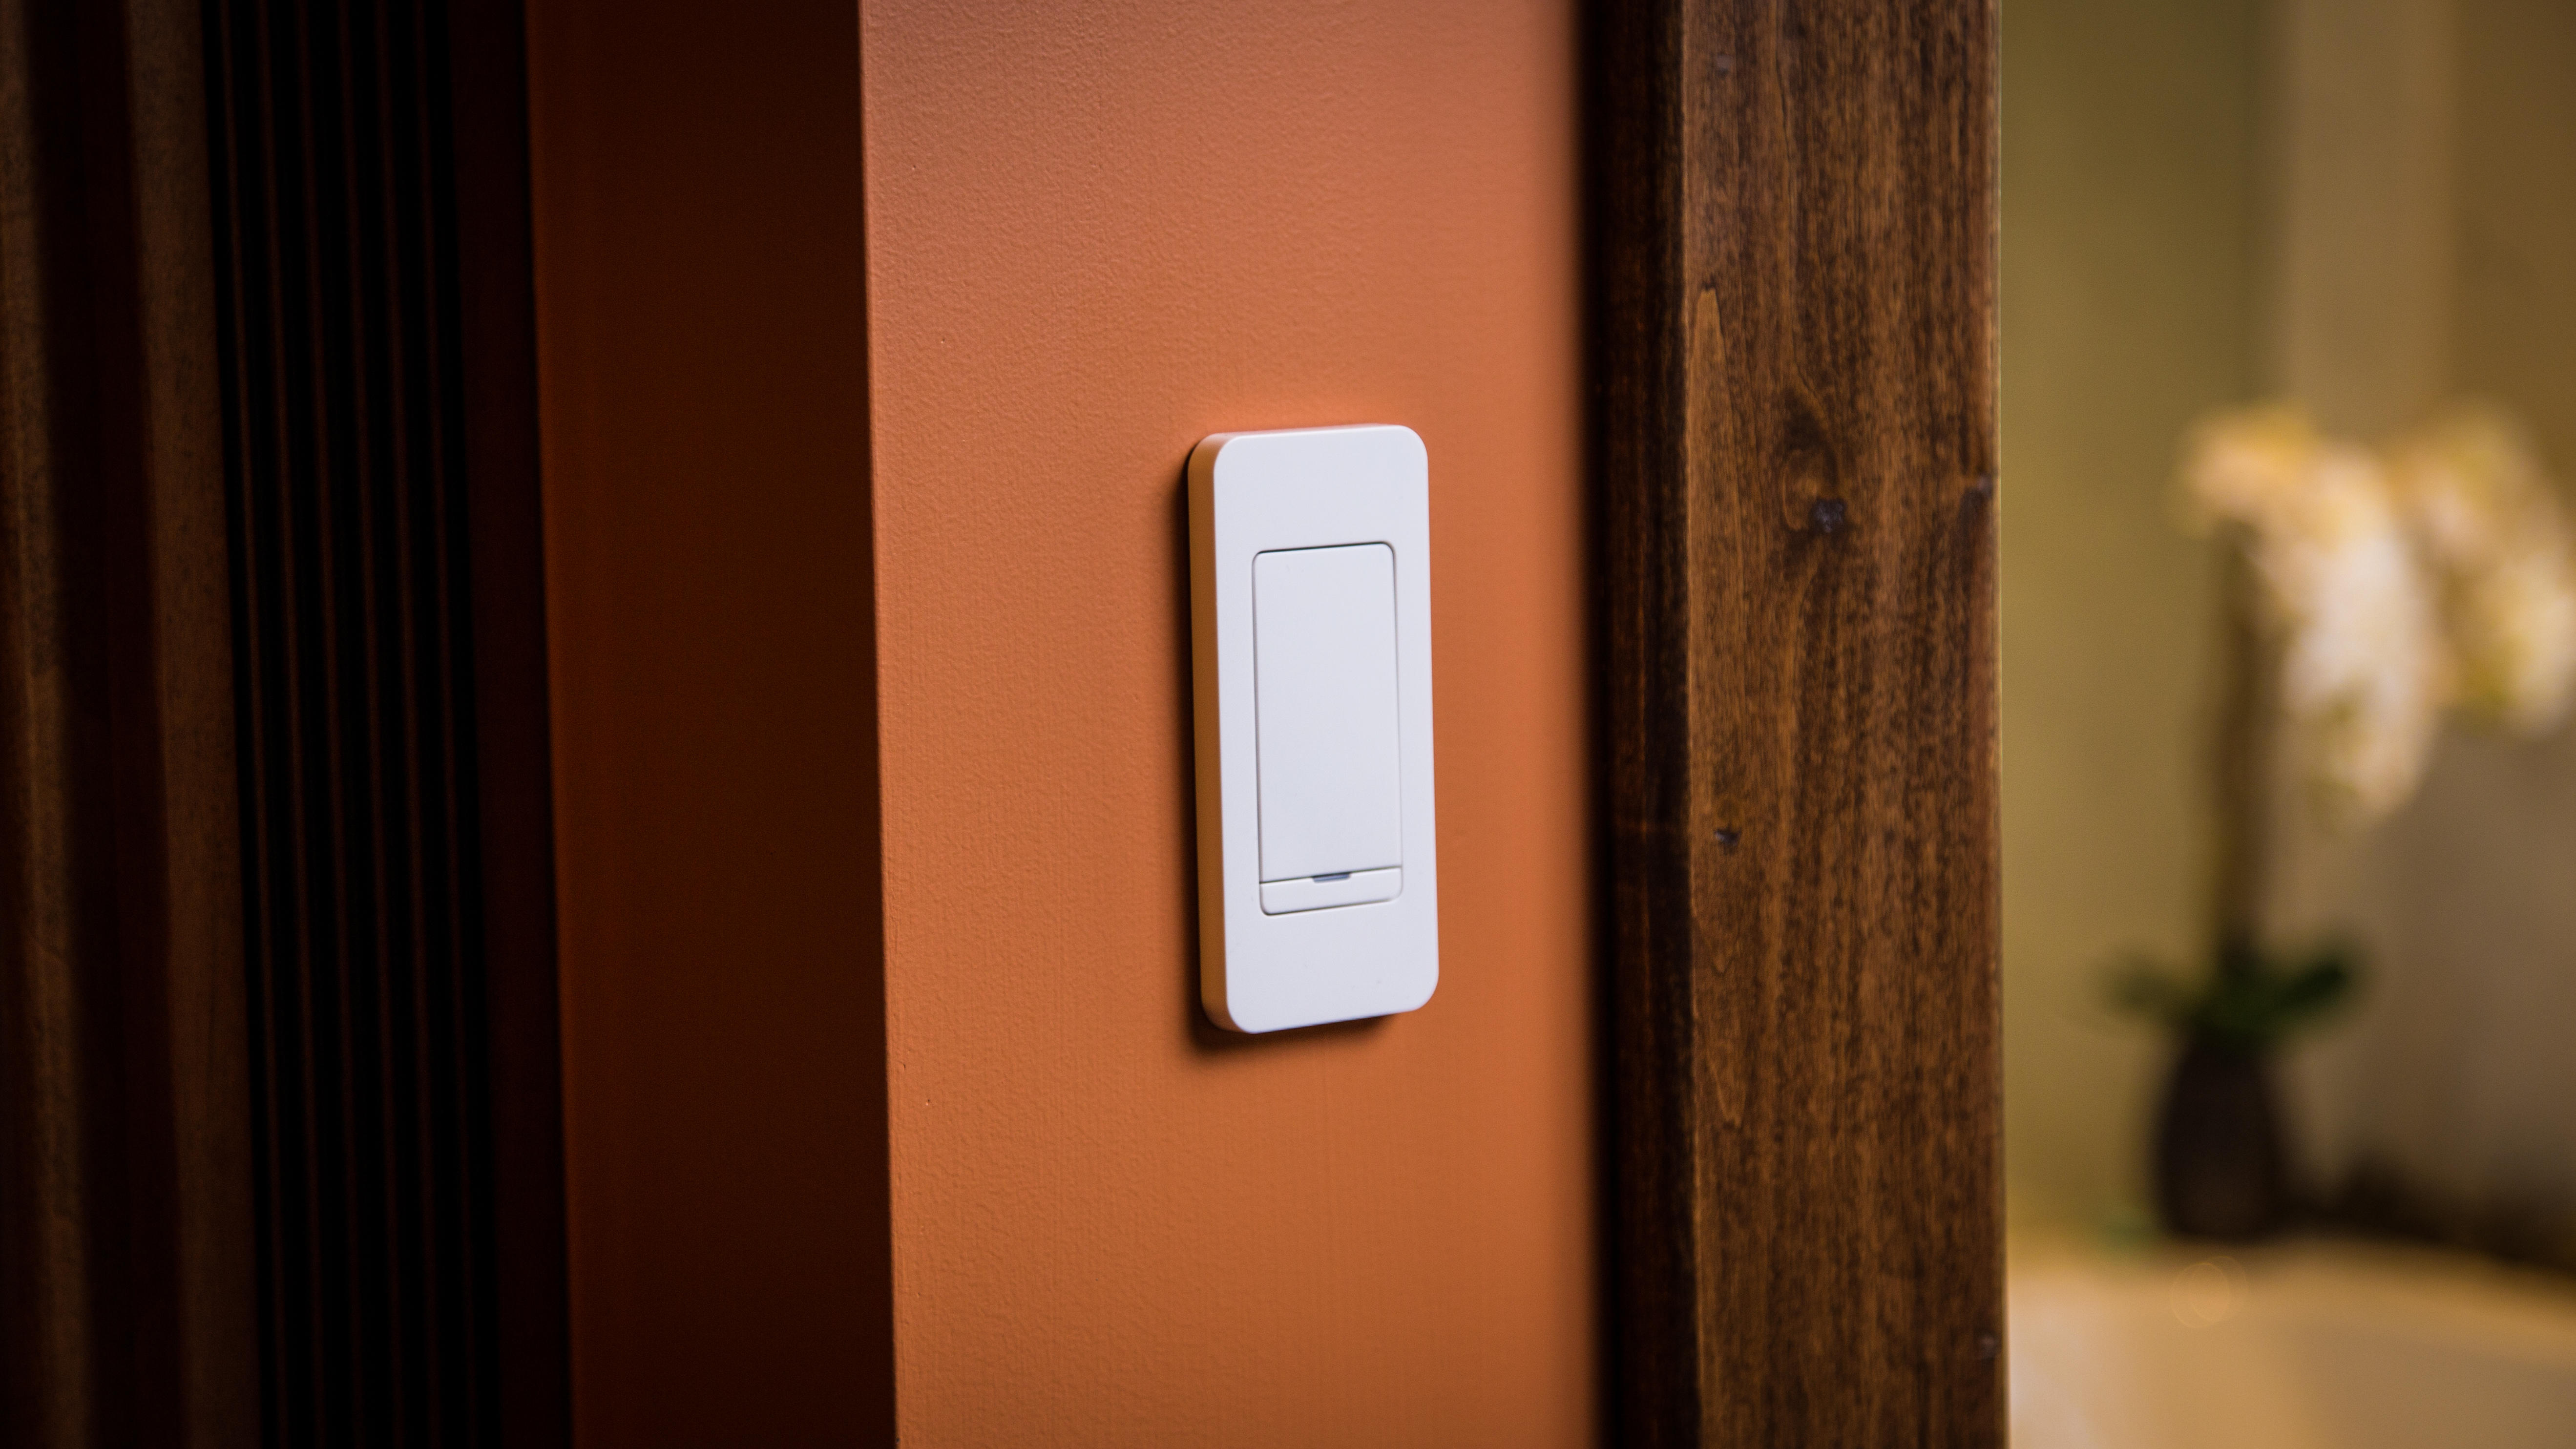 idevices-instant-switch-6